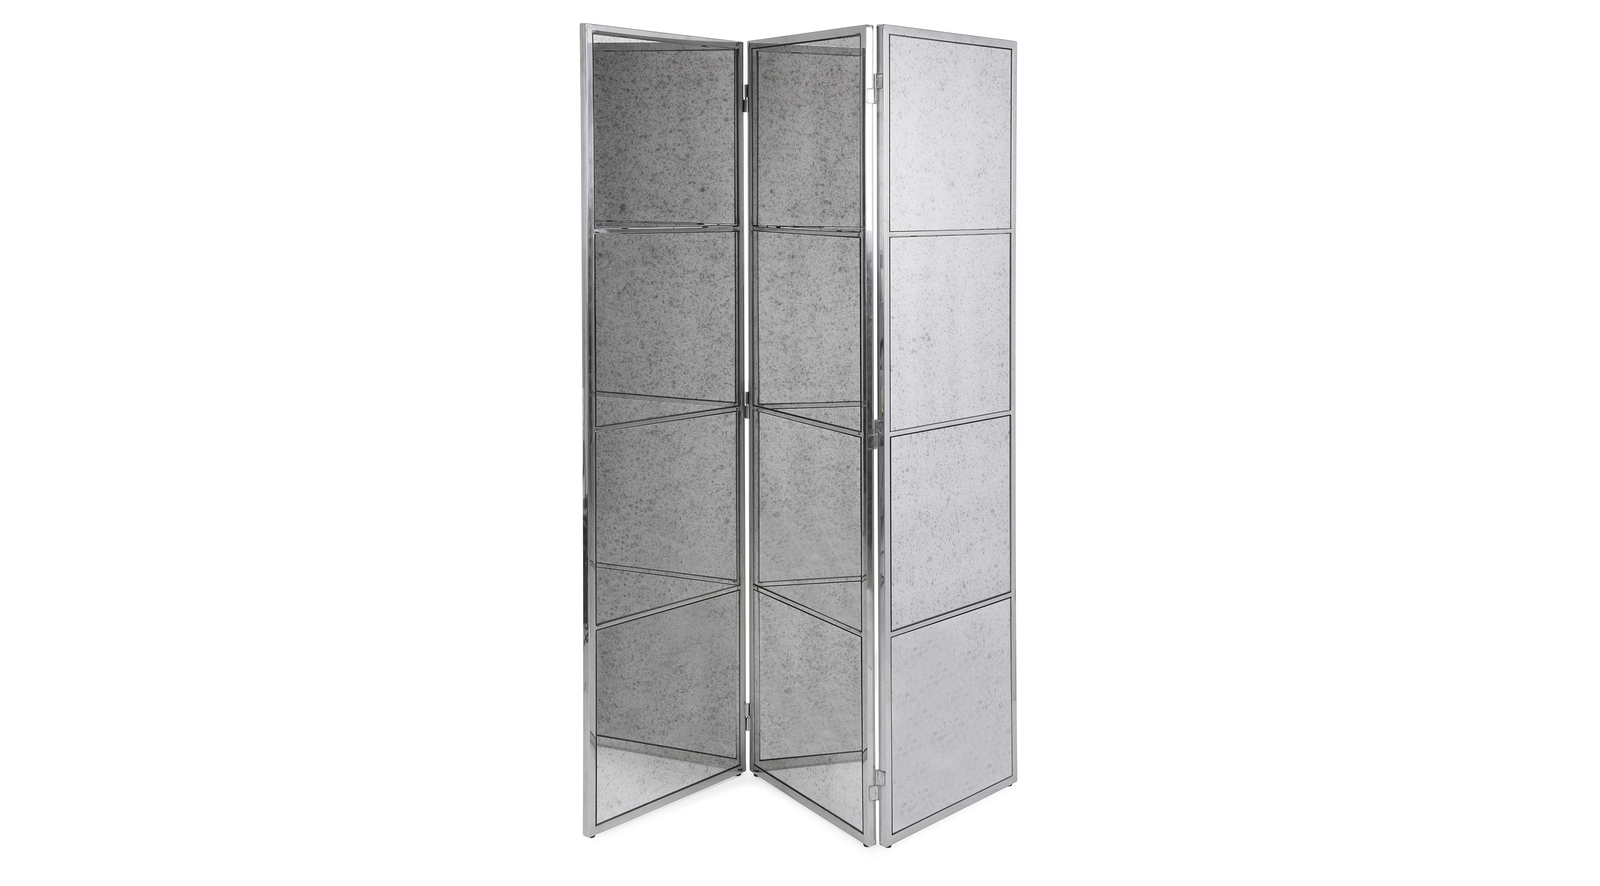 Luxe Mirrored Room Divider